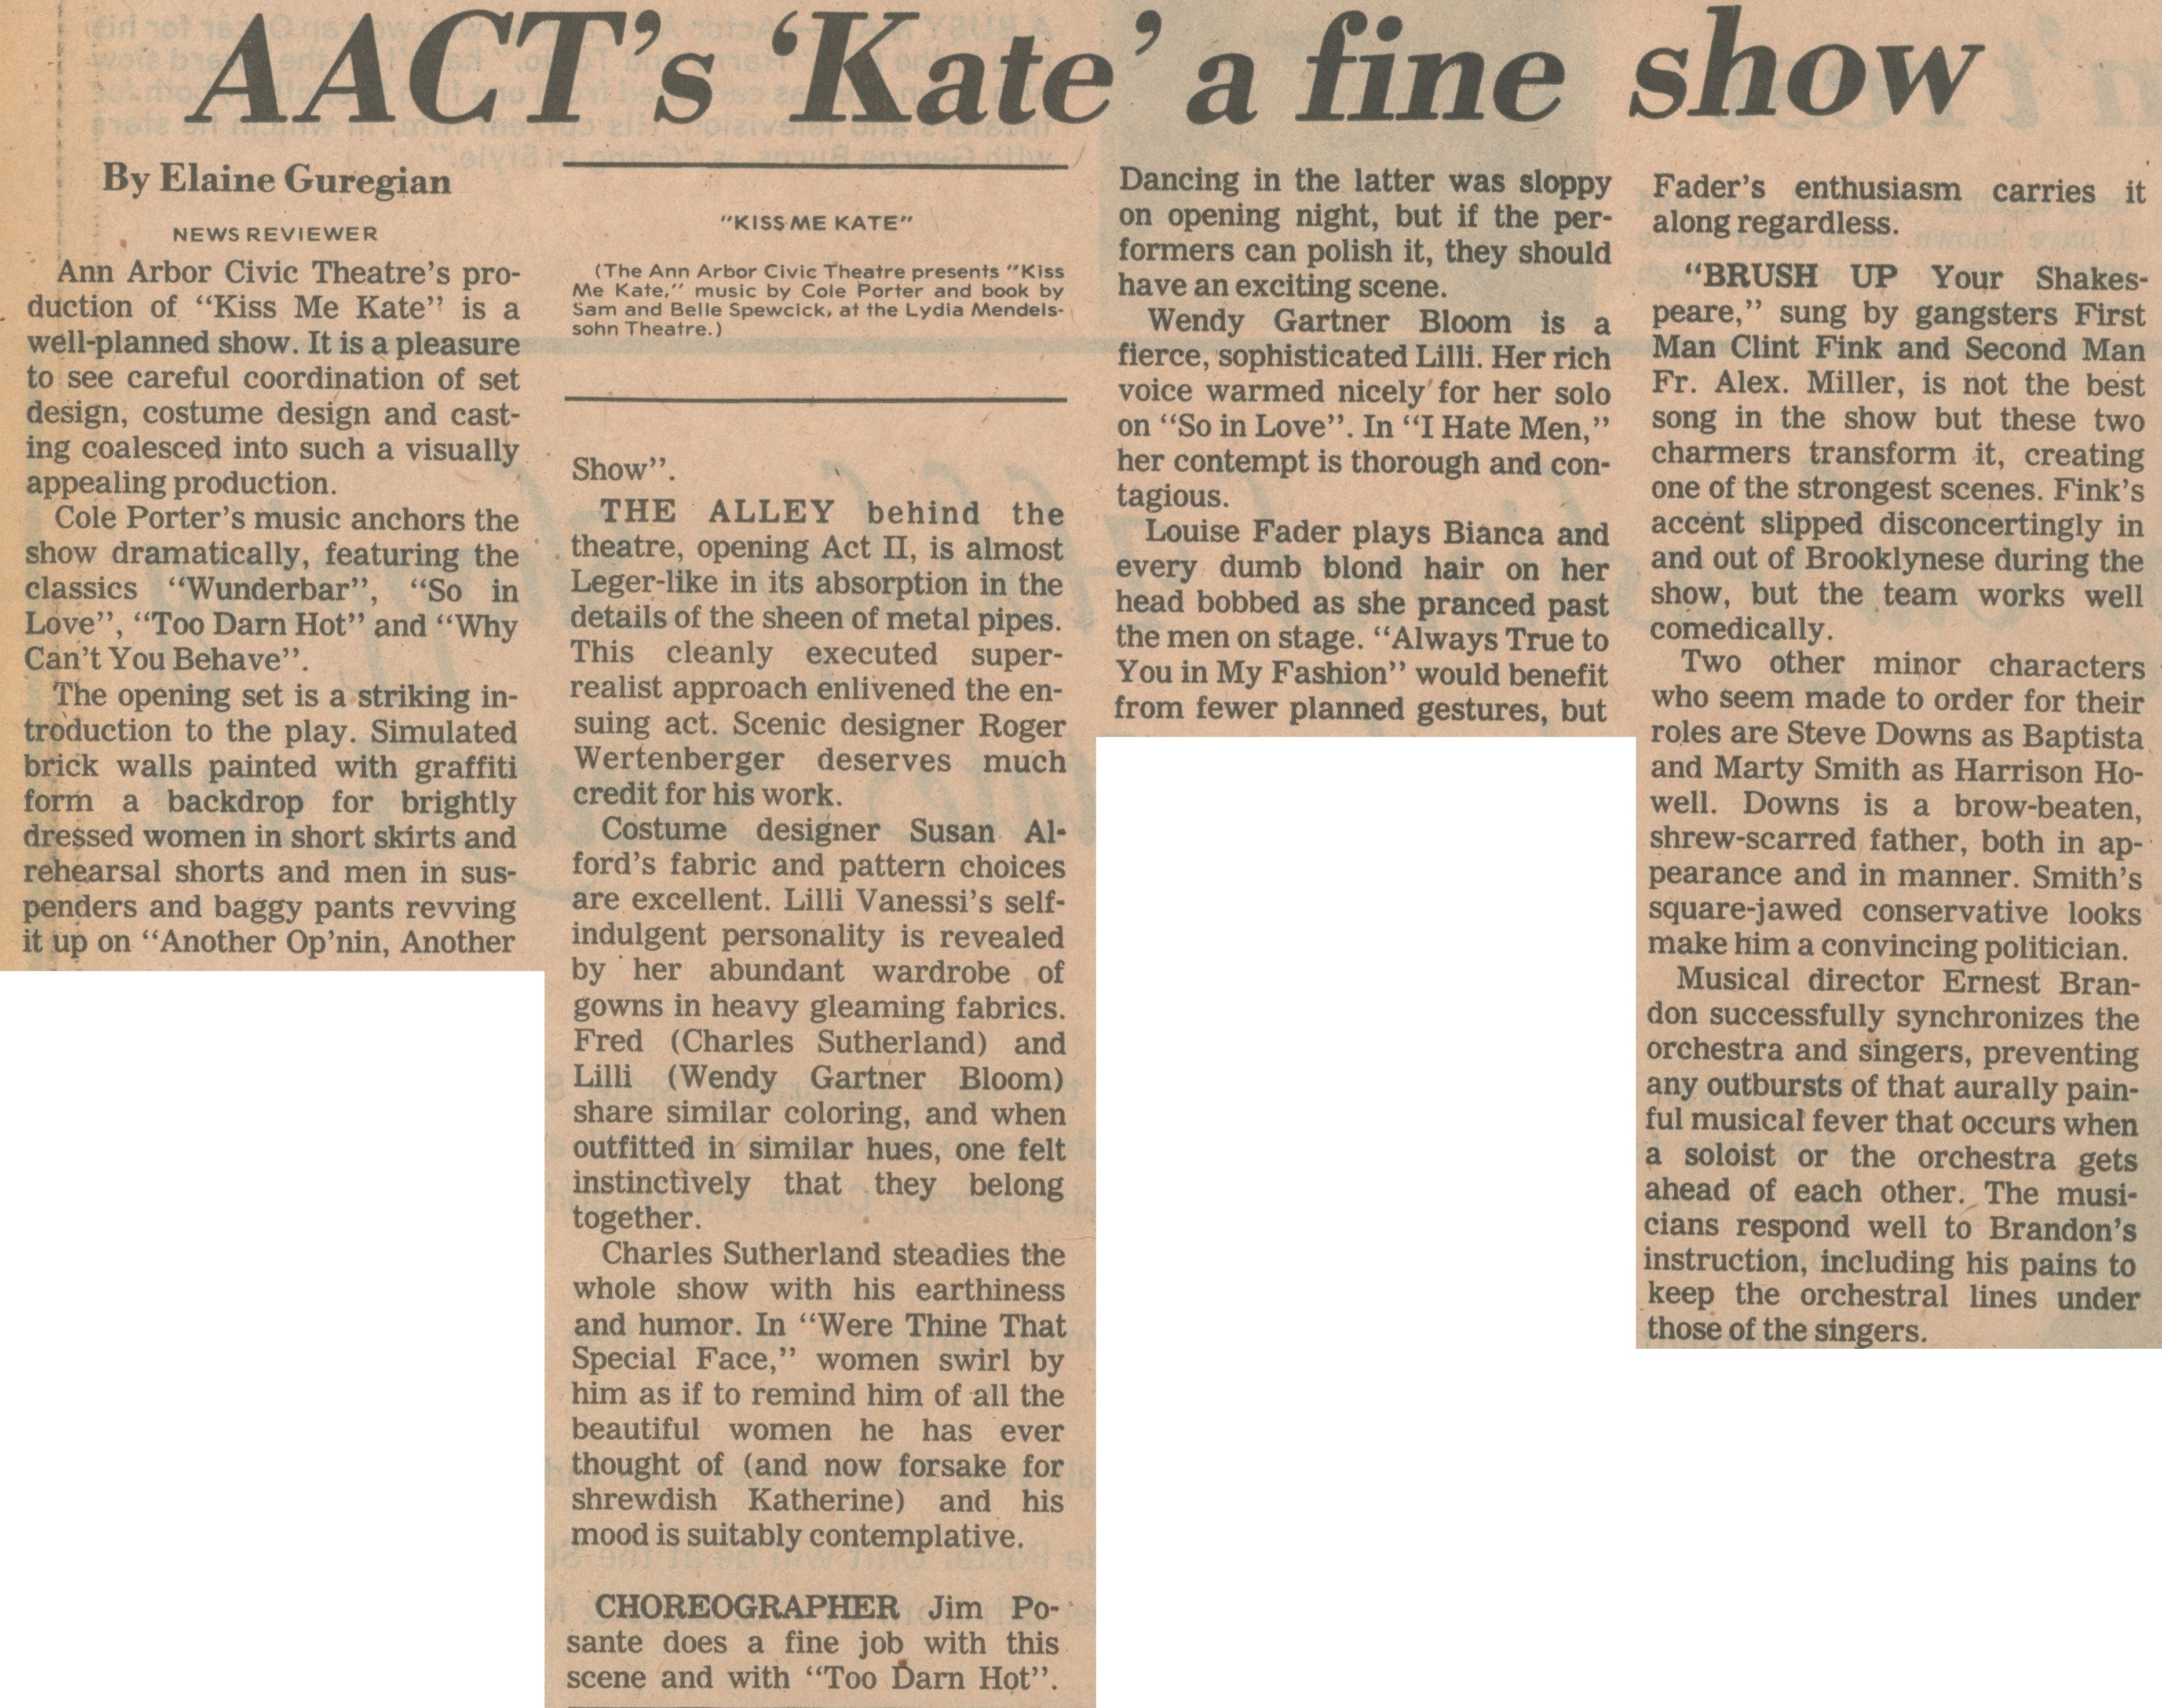 AACT's 'Kate' A Fine Show image